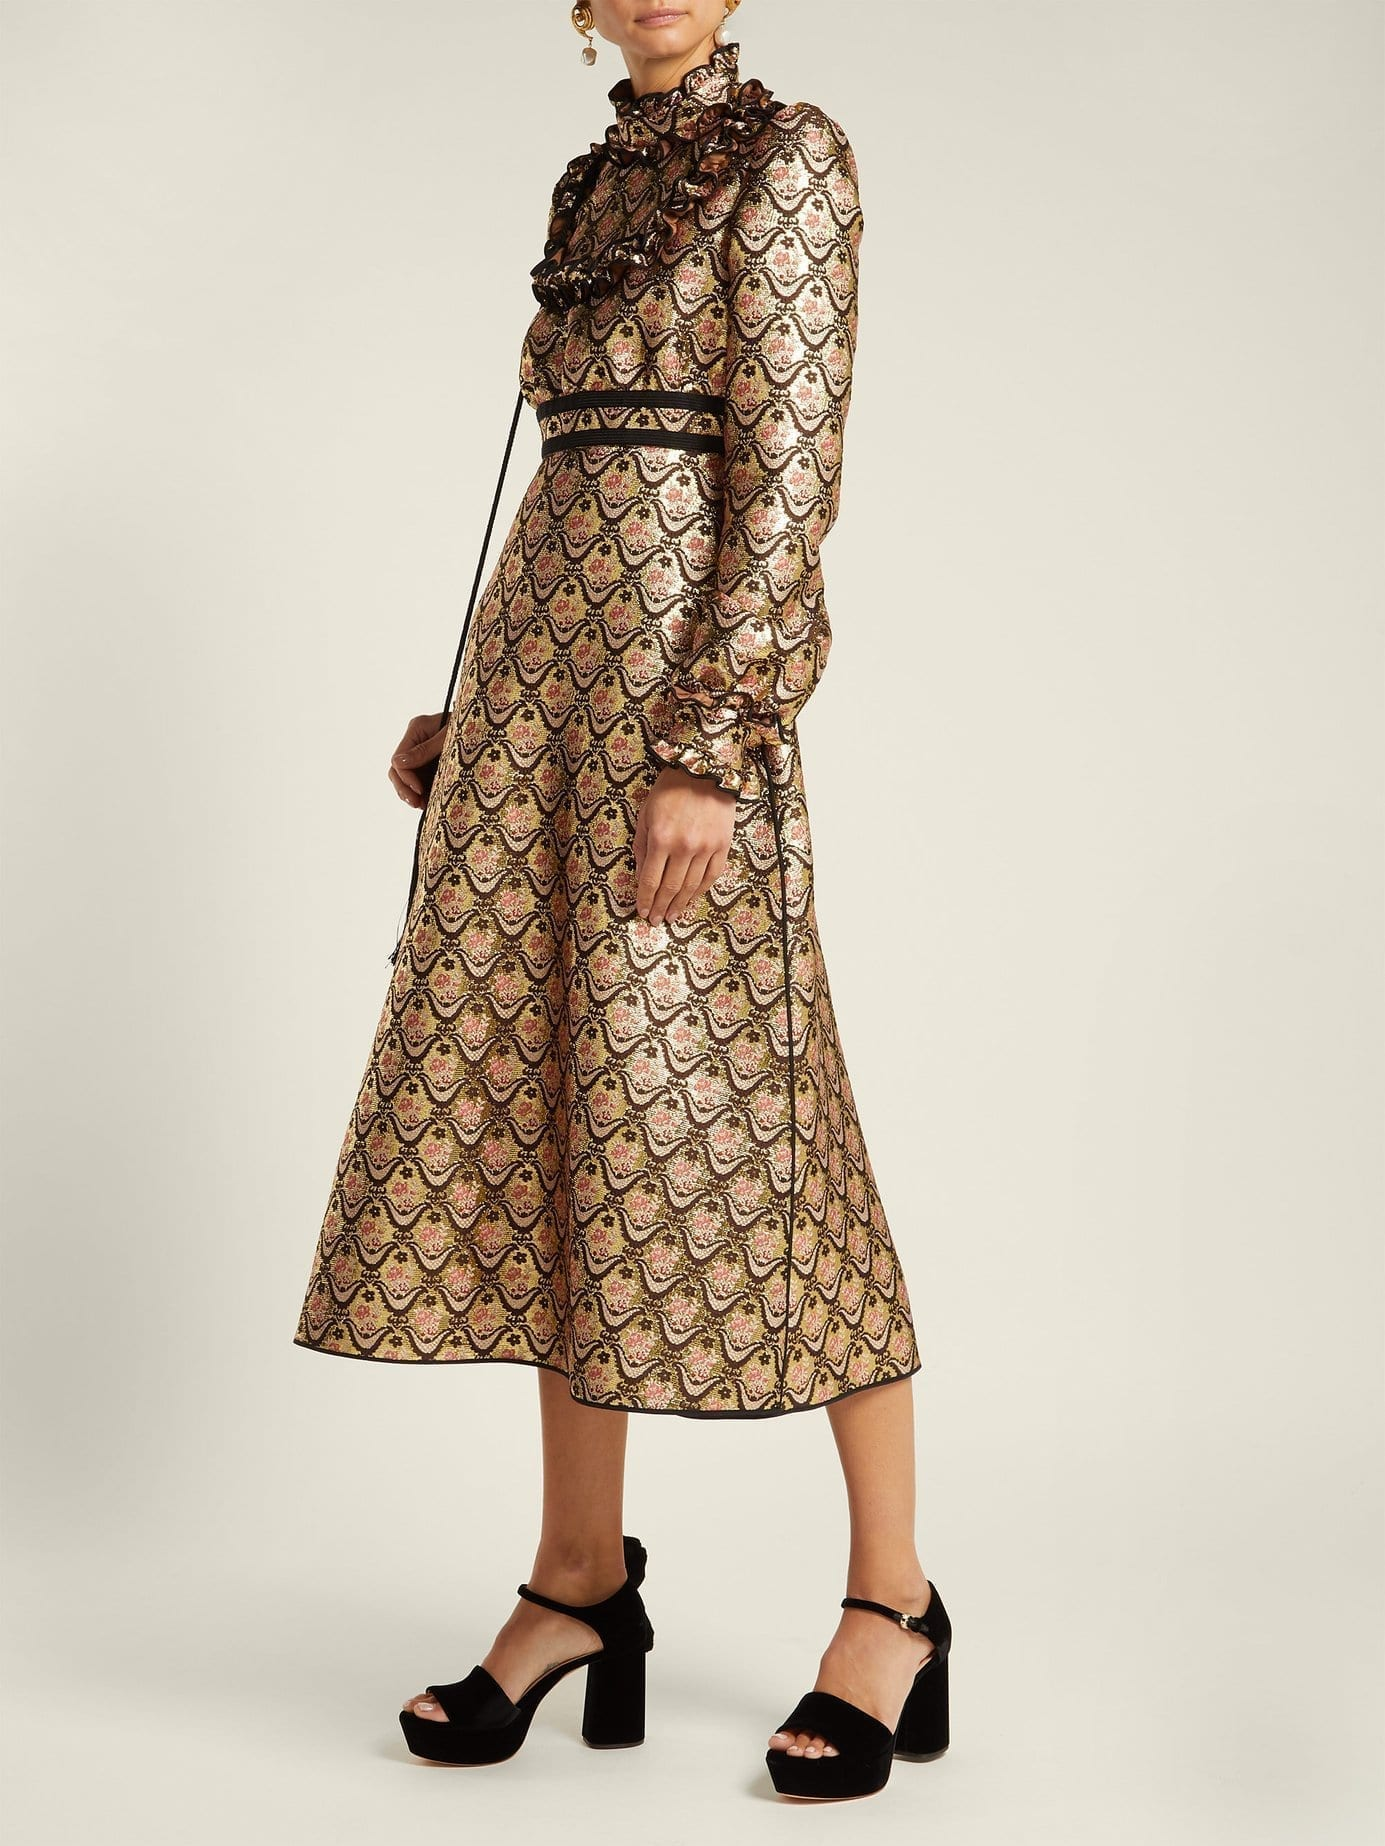 ROCHAS Floral Brocade Midi Gold Dress